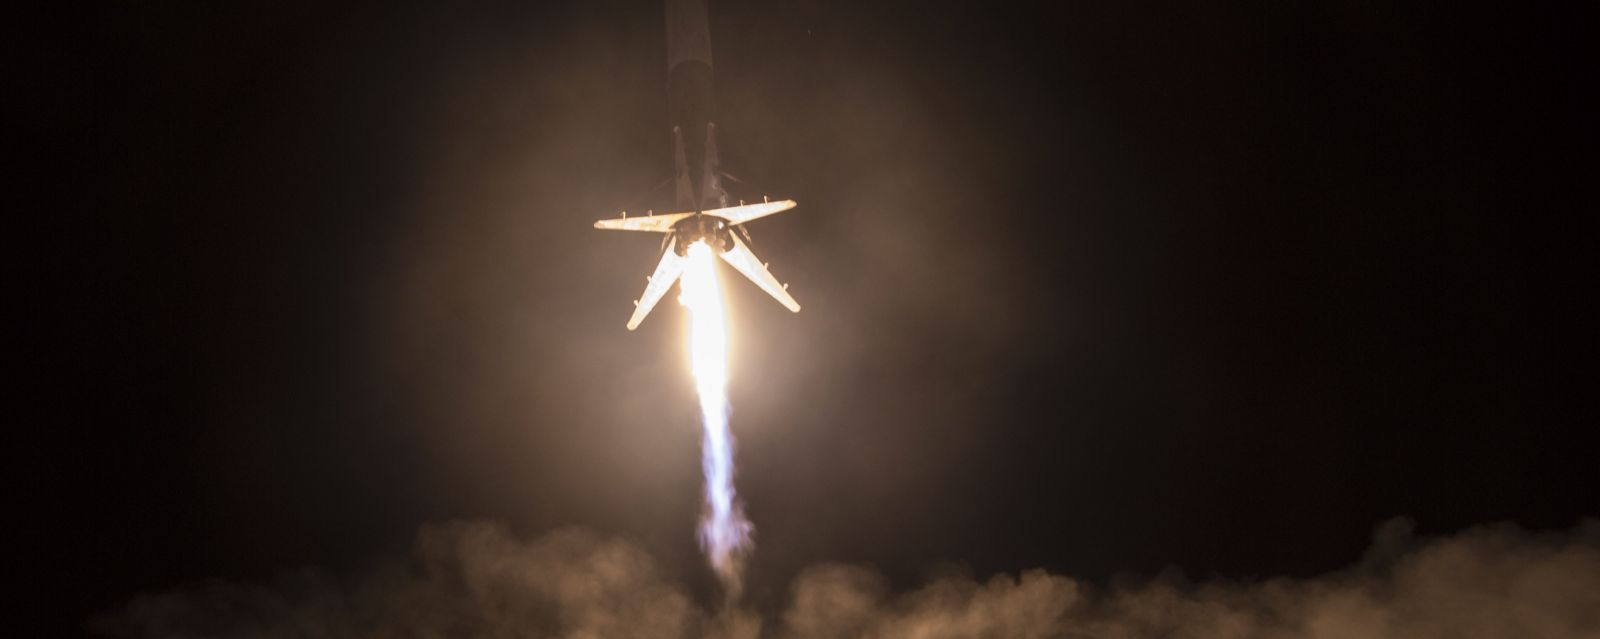 SpaceX's CRS-9 Falcon 9 first stage lands at Cape Canaveral's LZ-1. Photo Credit: SpaceX